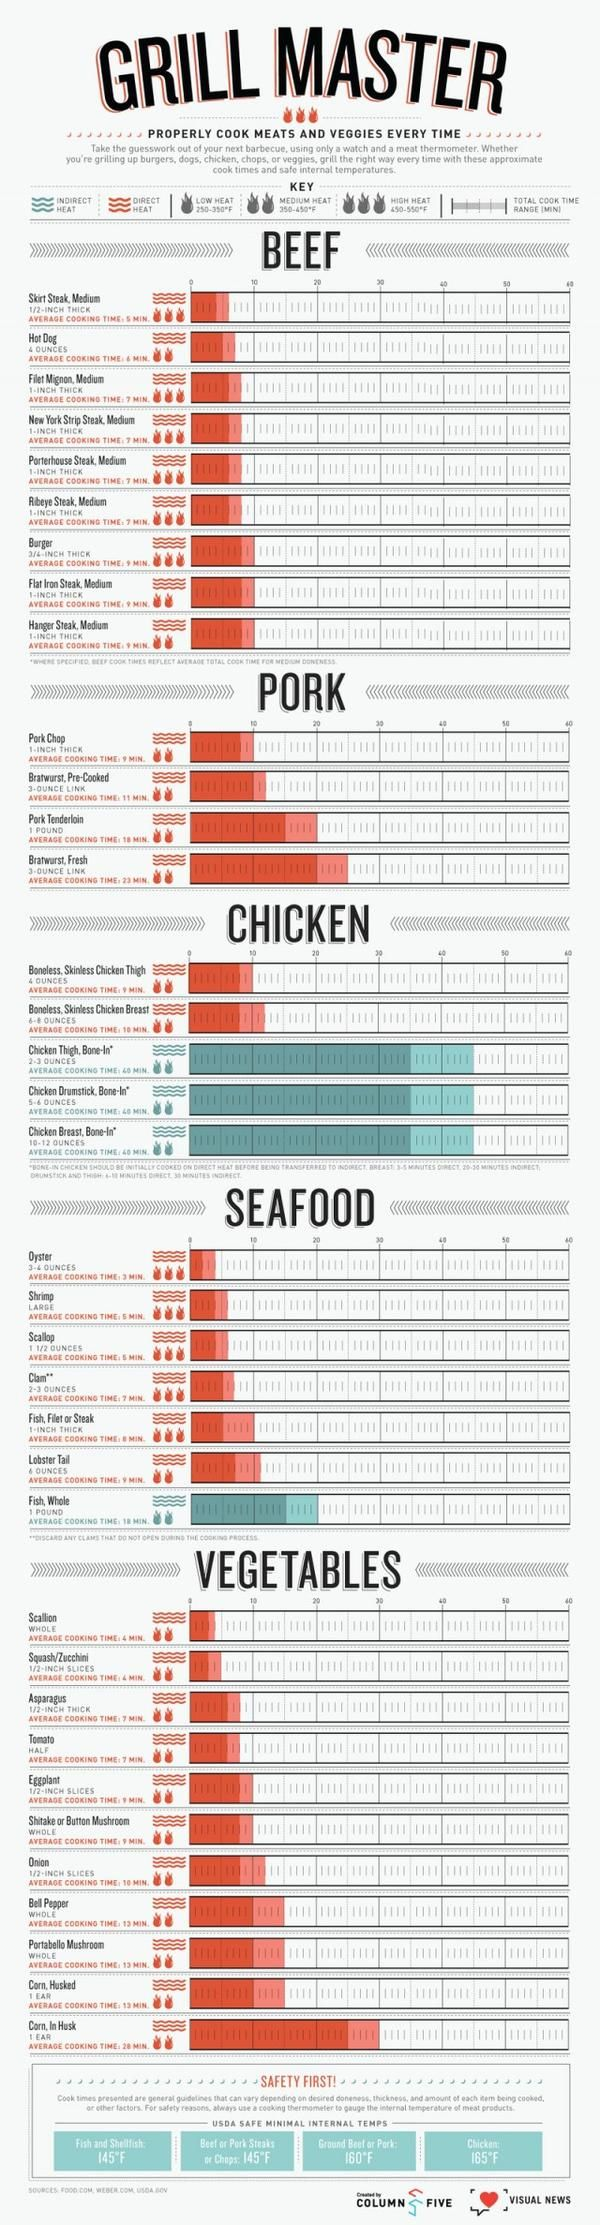 The Grill Master infographic will help you get your grill on as summer winds down. The chart is divided up by meat or vegetable type and shows on a timeline just how long each needs to be cooked. It even includes whether you need to grill with direct or indirect heat.